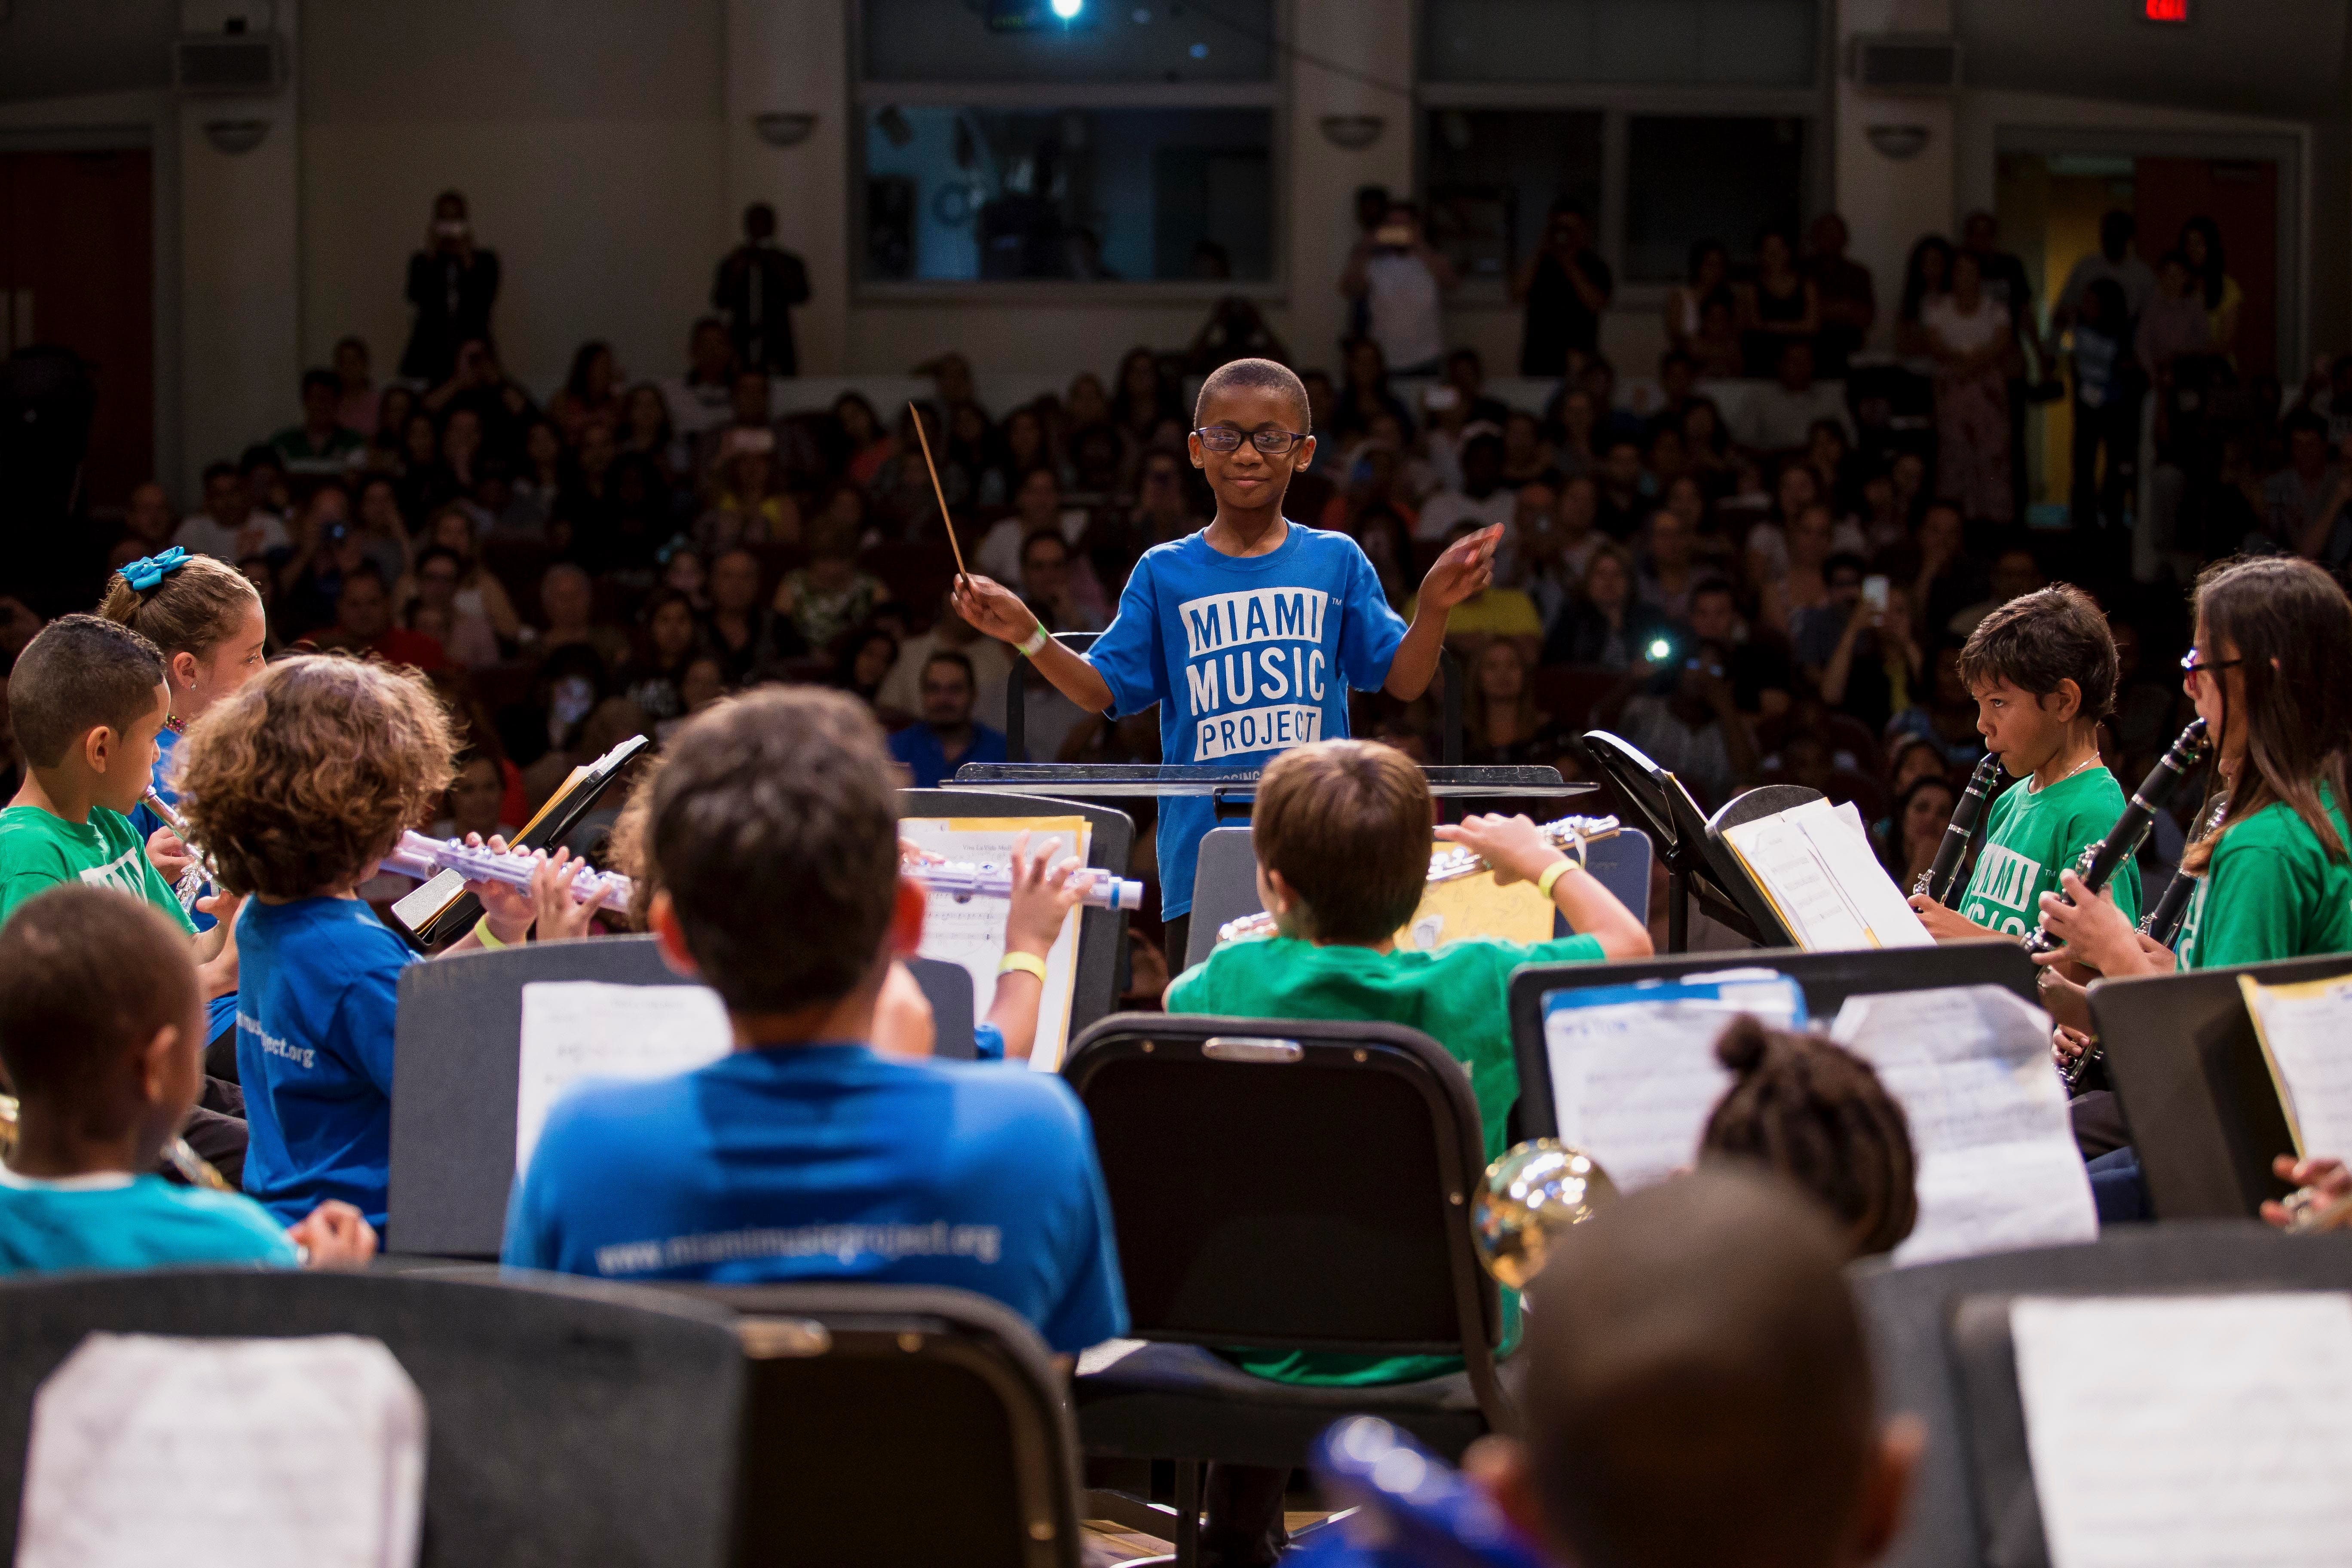 <p><em>A performance by the Miami Music Project, which will receive a $750,000 investment from Knight to introduce more youth to classical music training.</em></p>